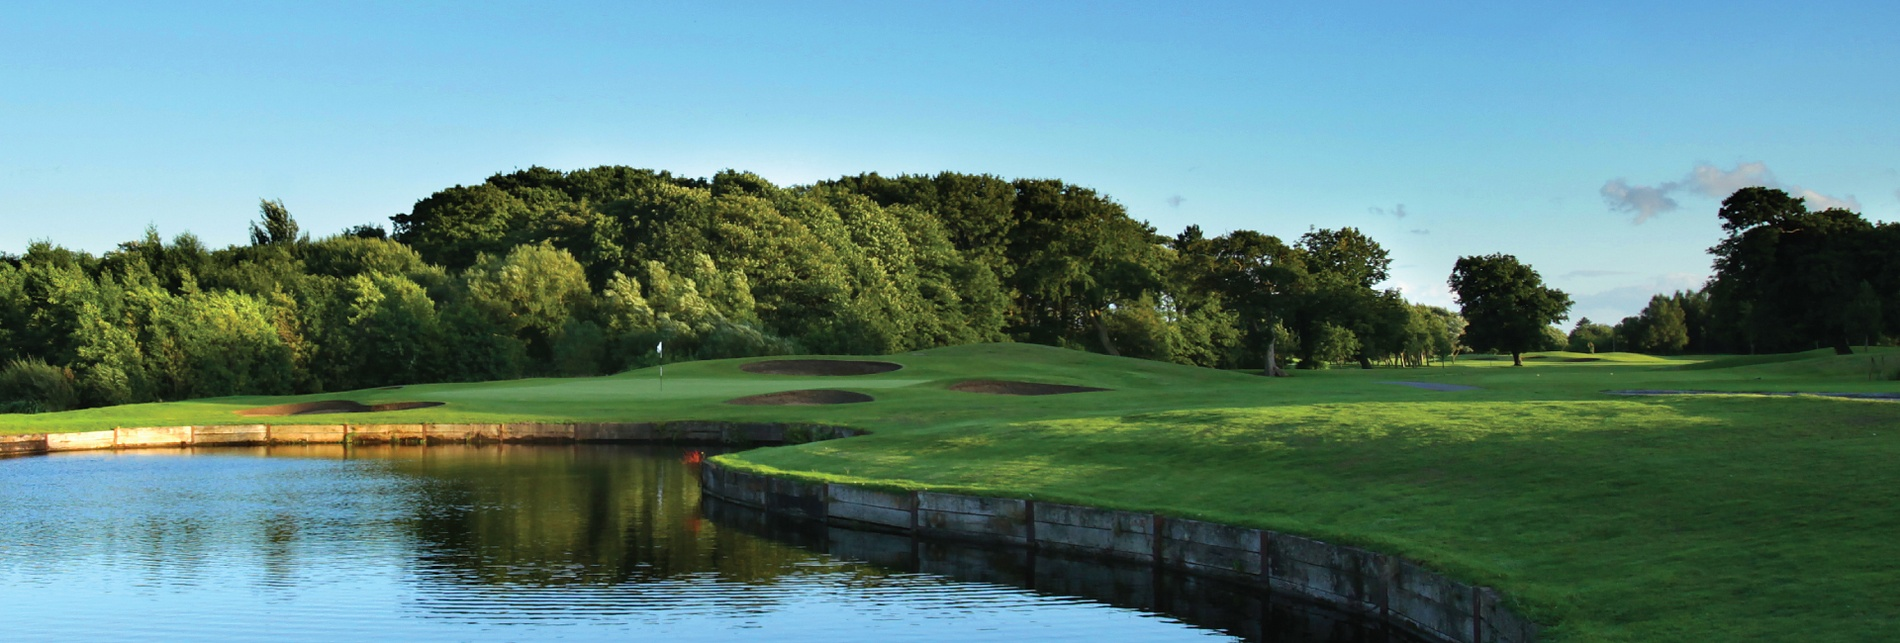 Formby Hall Golf Resort Explore The Golf